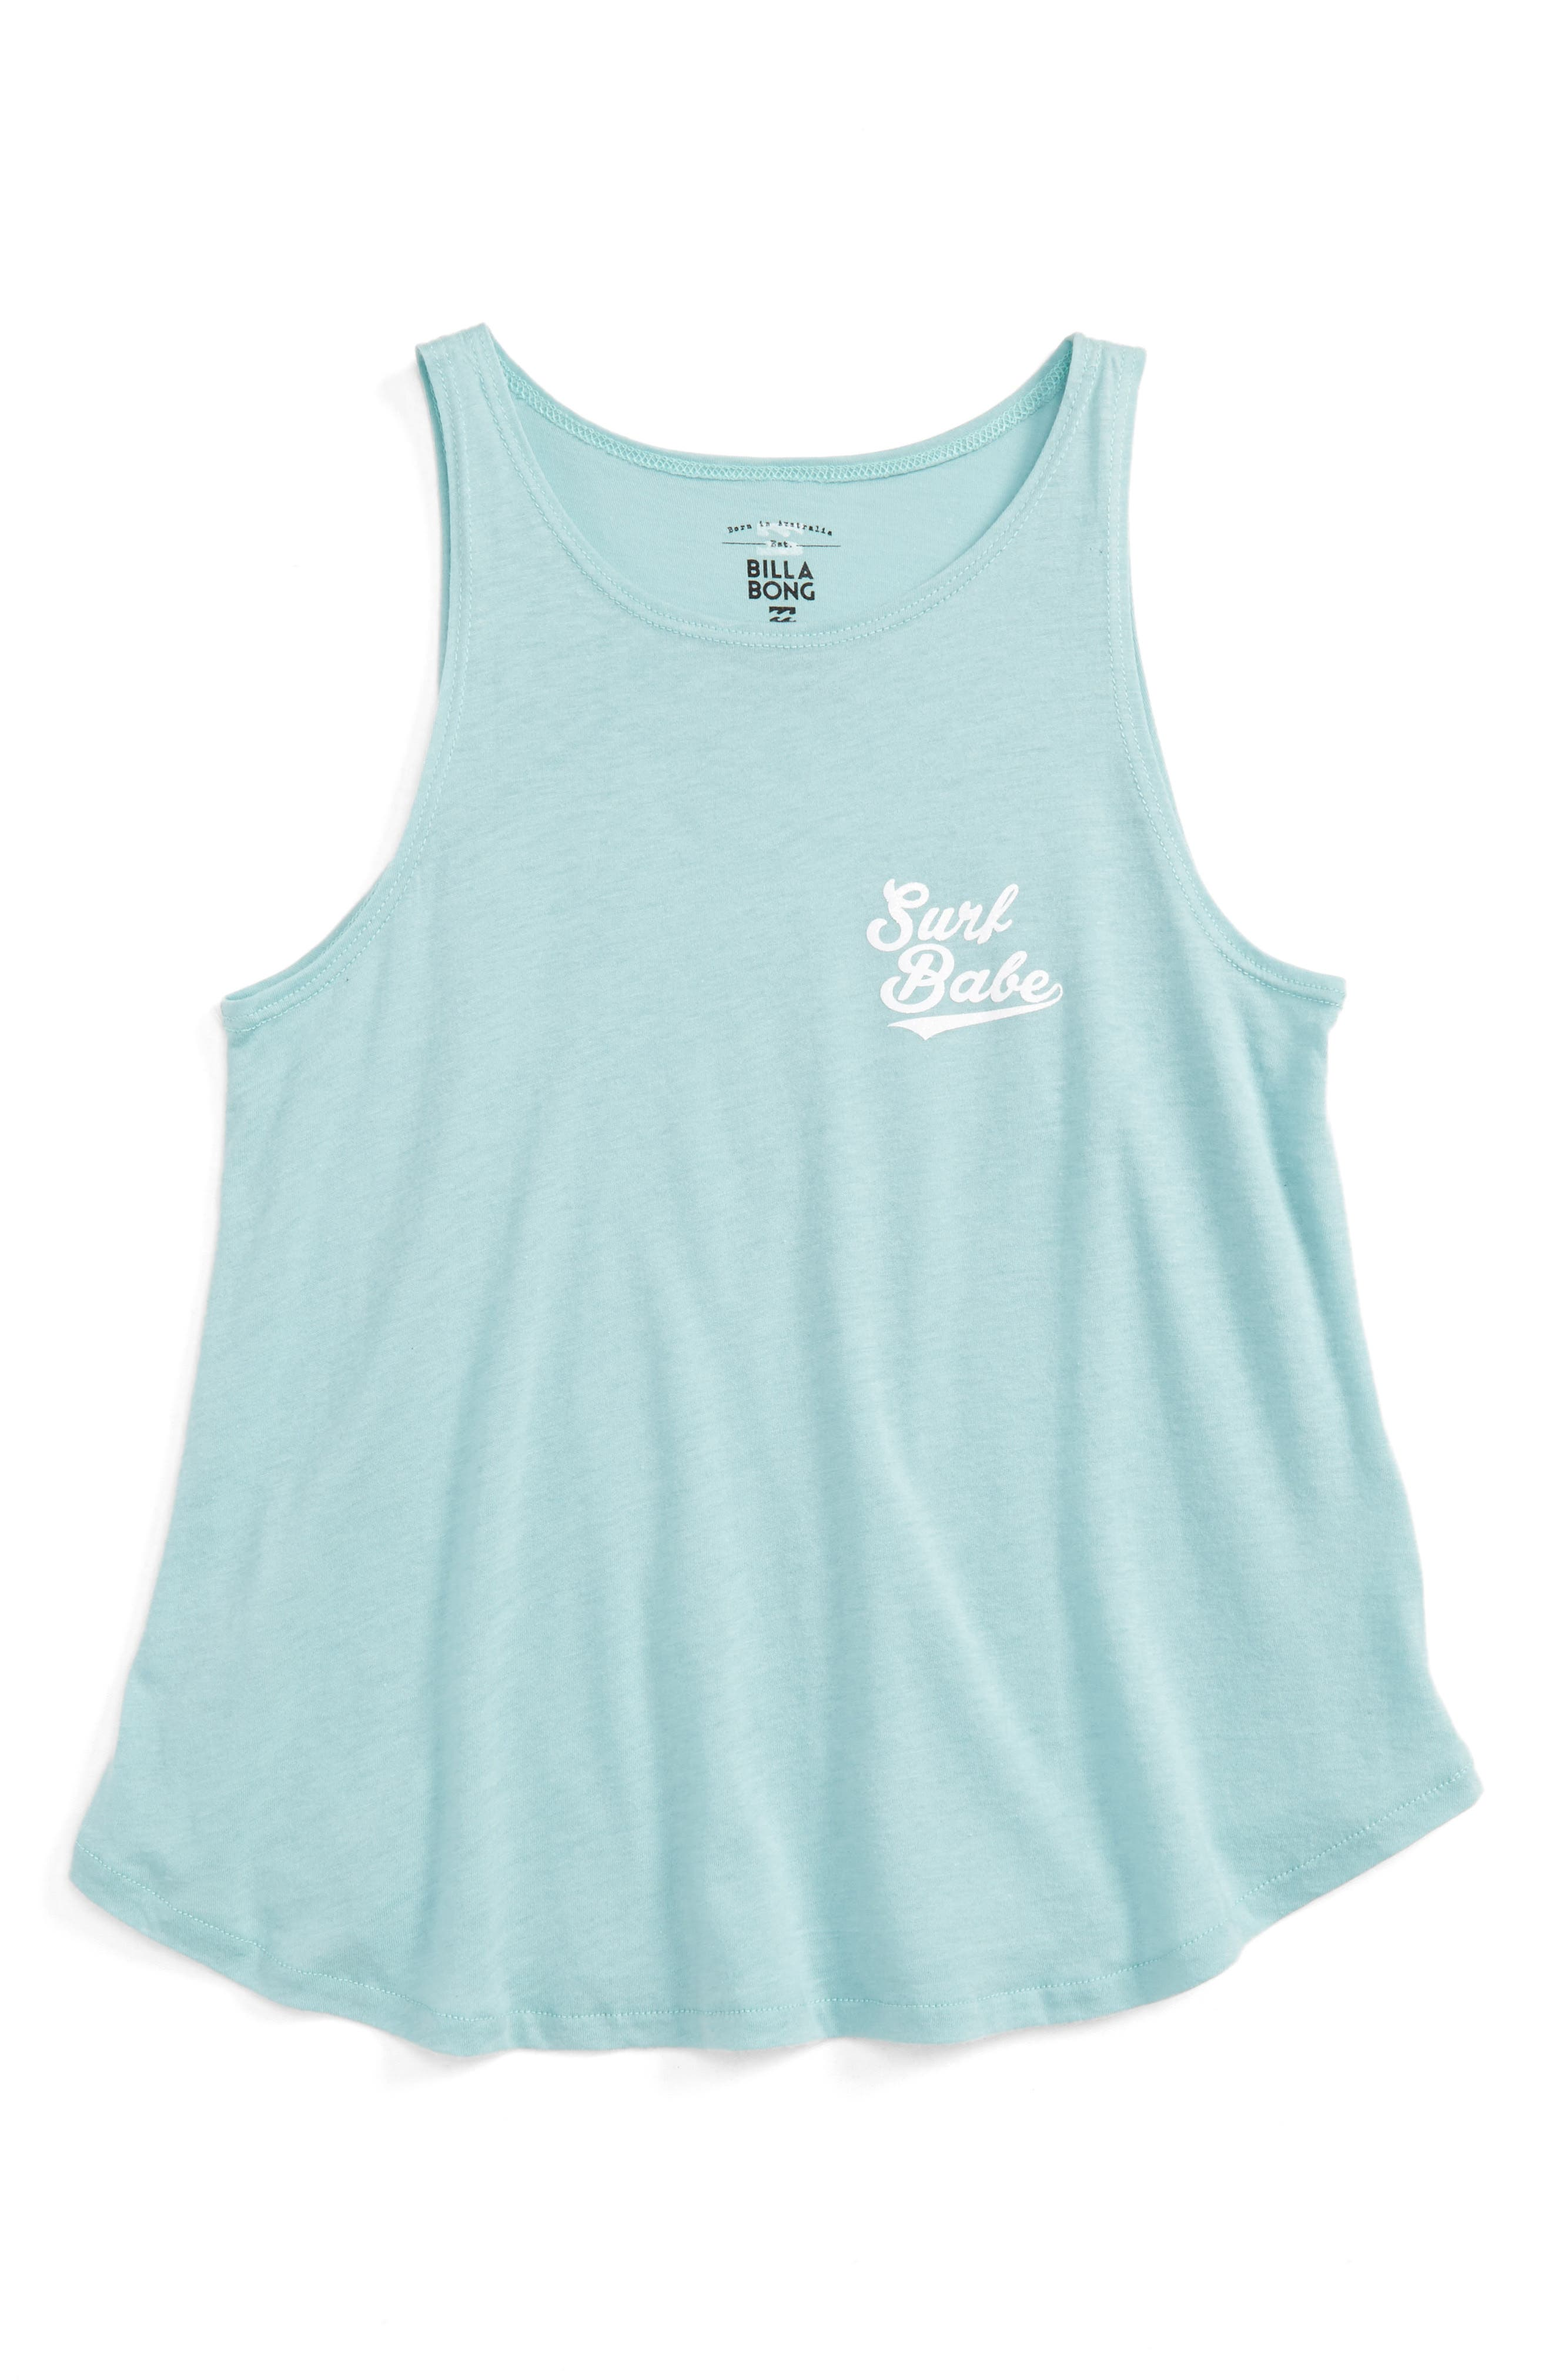 Surf Babe Graphic Tank,                         Main,                         color, 304